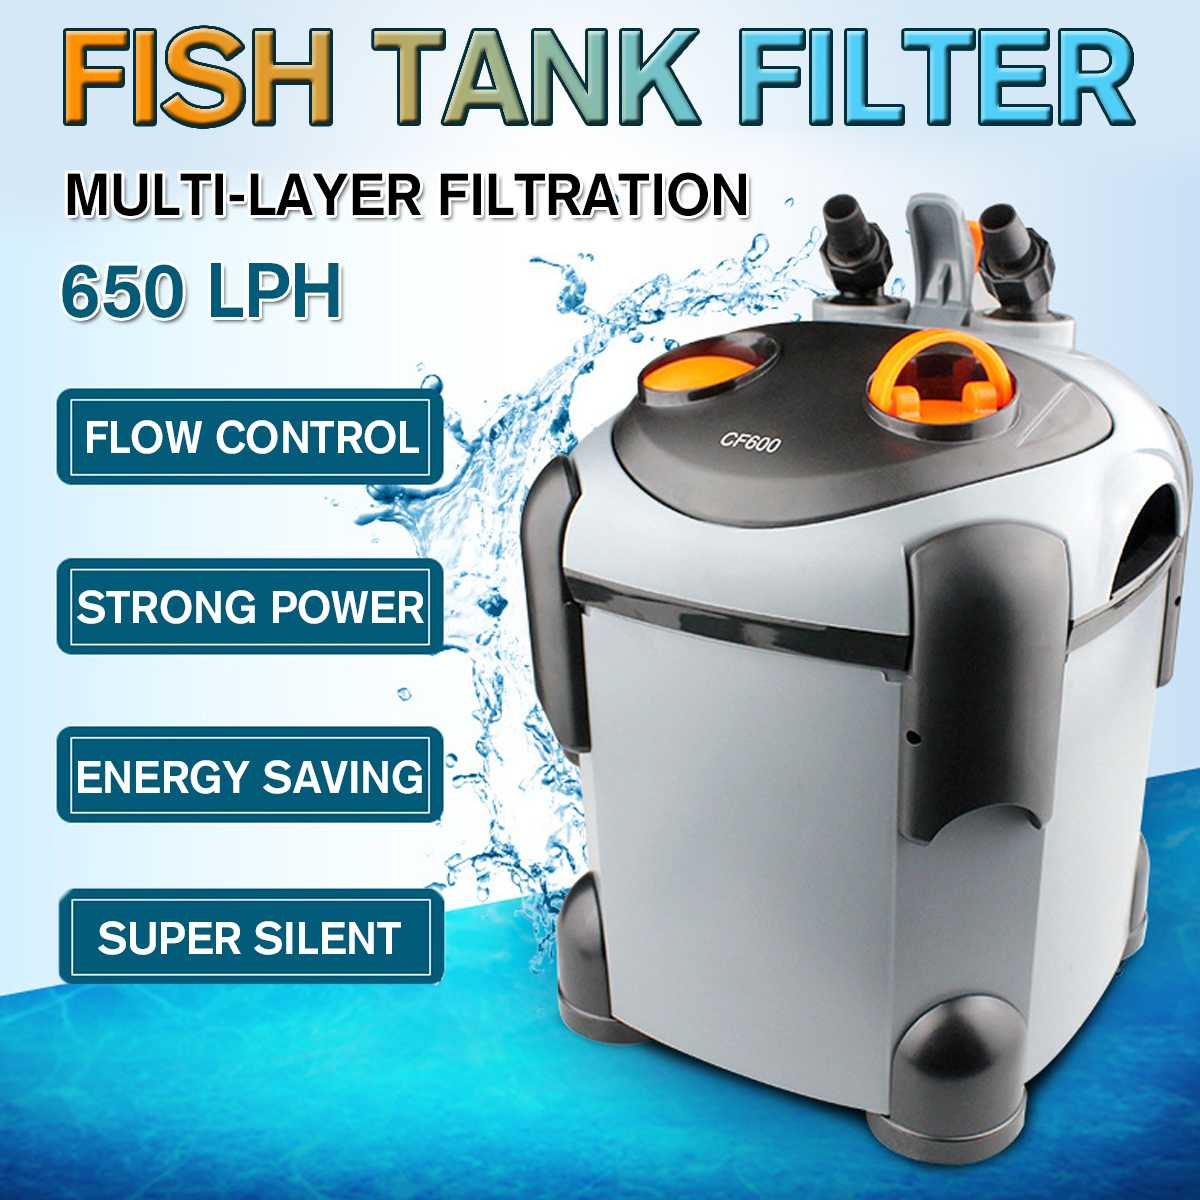 9.3W 650LPH Aquarium External Fish Tank Canister Filter for Aqua Fish Tank Filtration with Intake Output Hose Pet Supplies|Filters & Accessories| - AliExpress